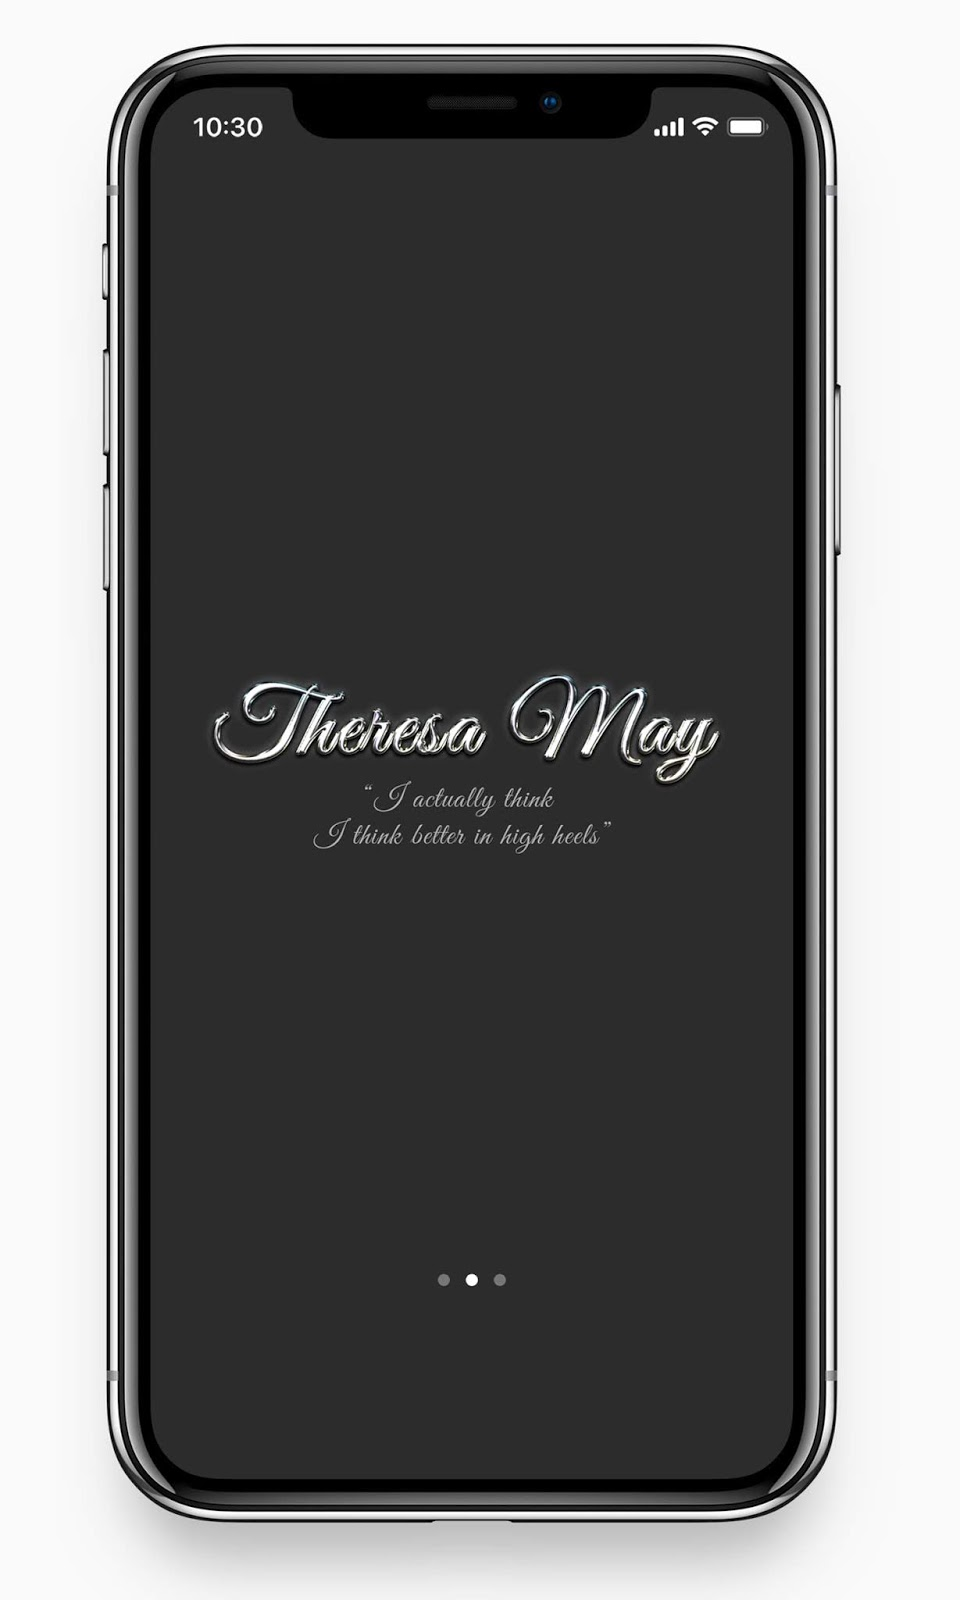 Custom Smartphone Display, Phone Theme, Monogrammed, Personalized just for you, iphone / Android Wallpaper